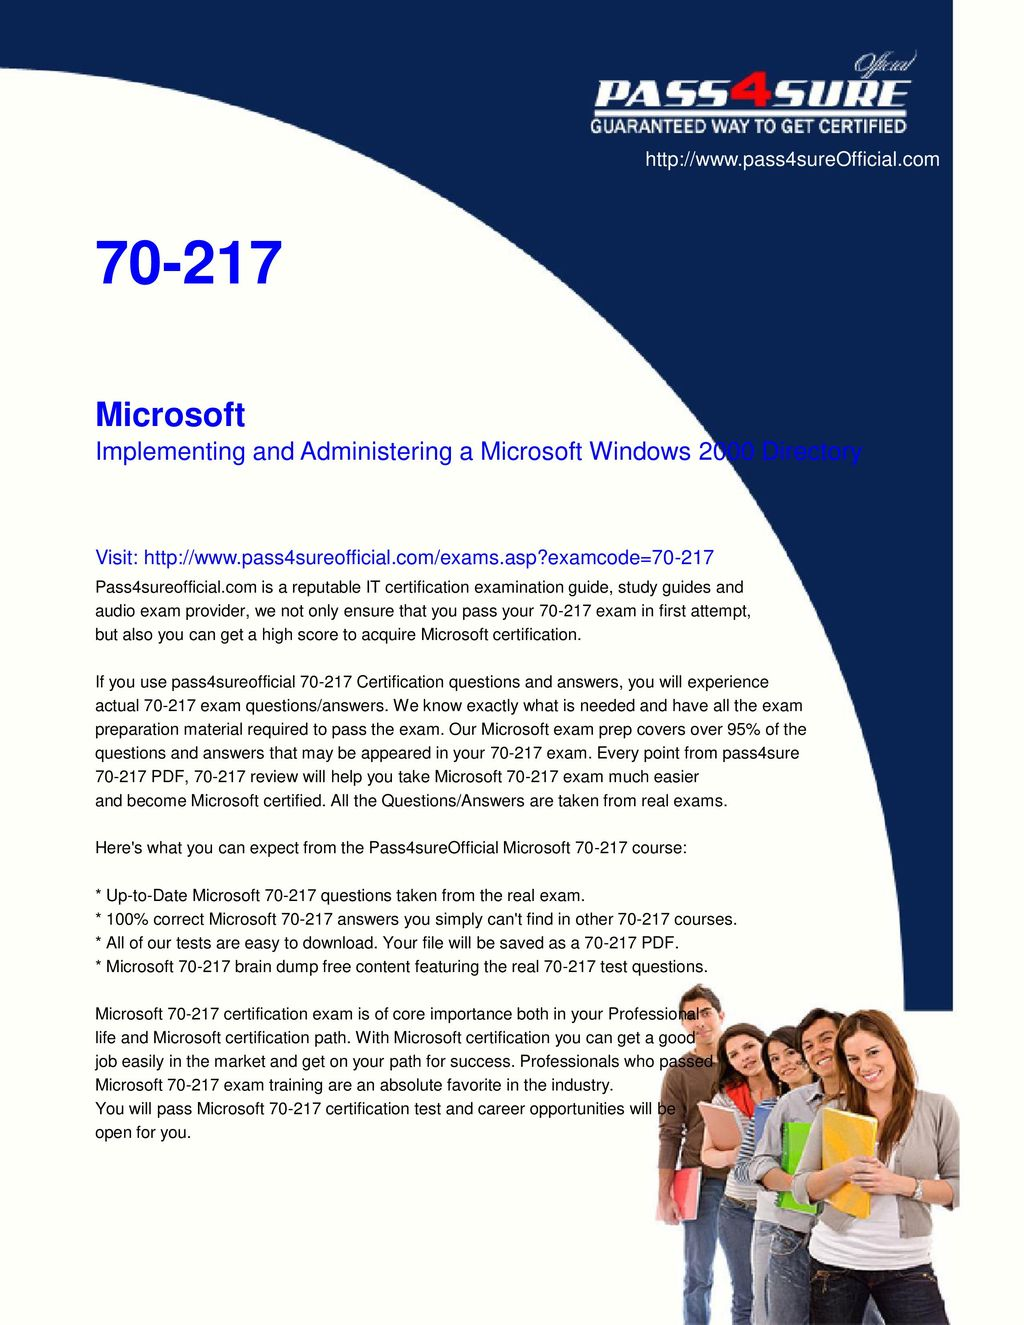 Microsoft Implementing And Administering A Microsoft Windows 2000